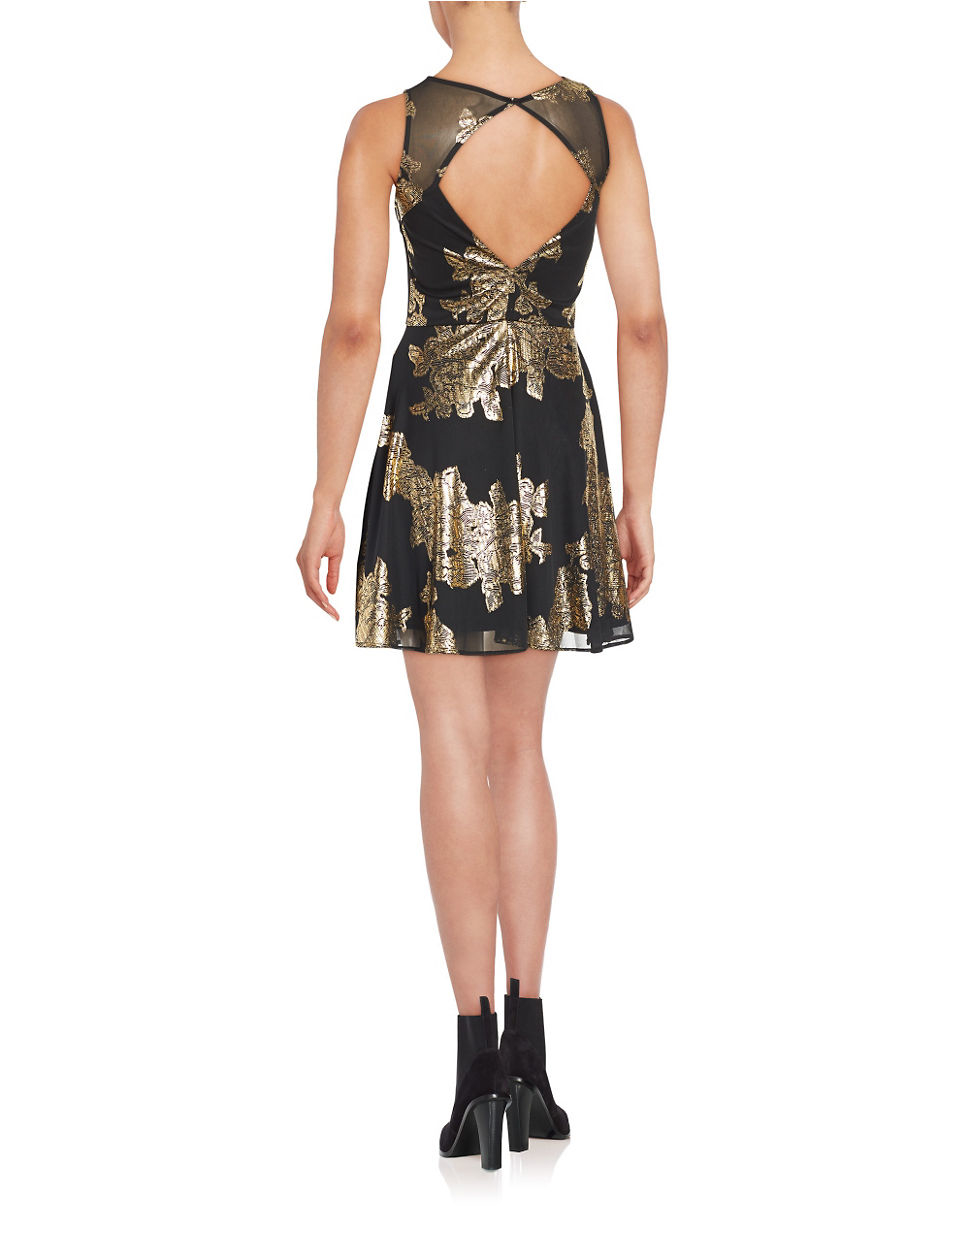 Lyst - Lord & Taylor Open-back Fit And Flare Dress in Metallic